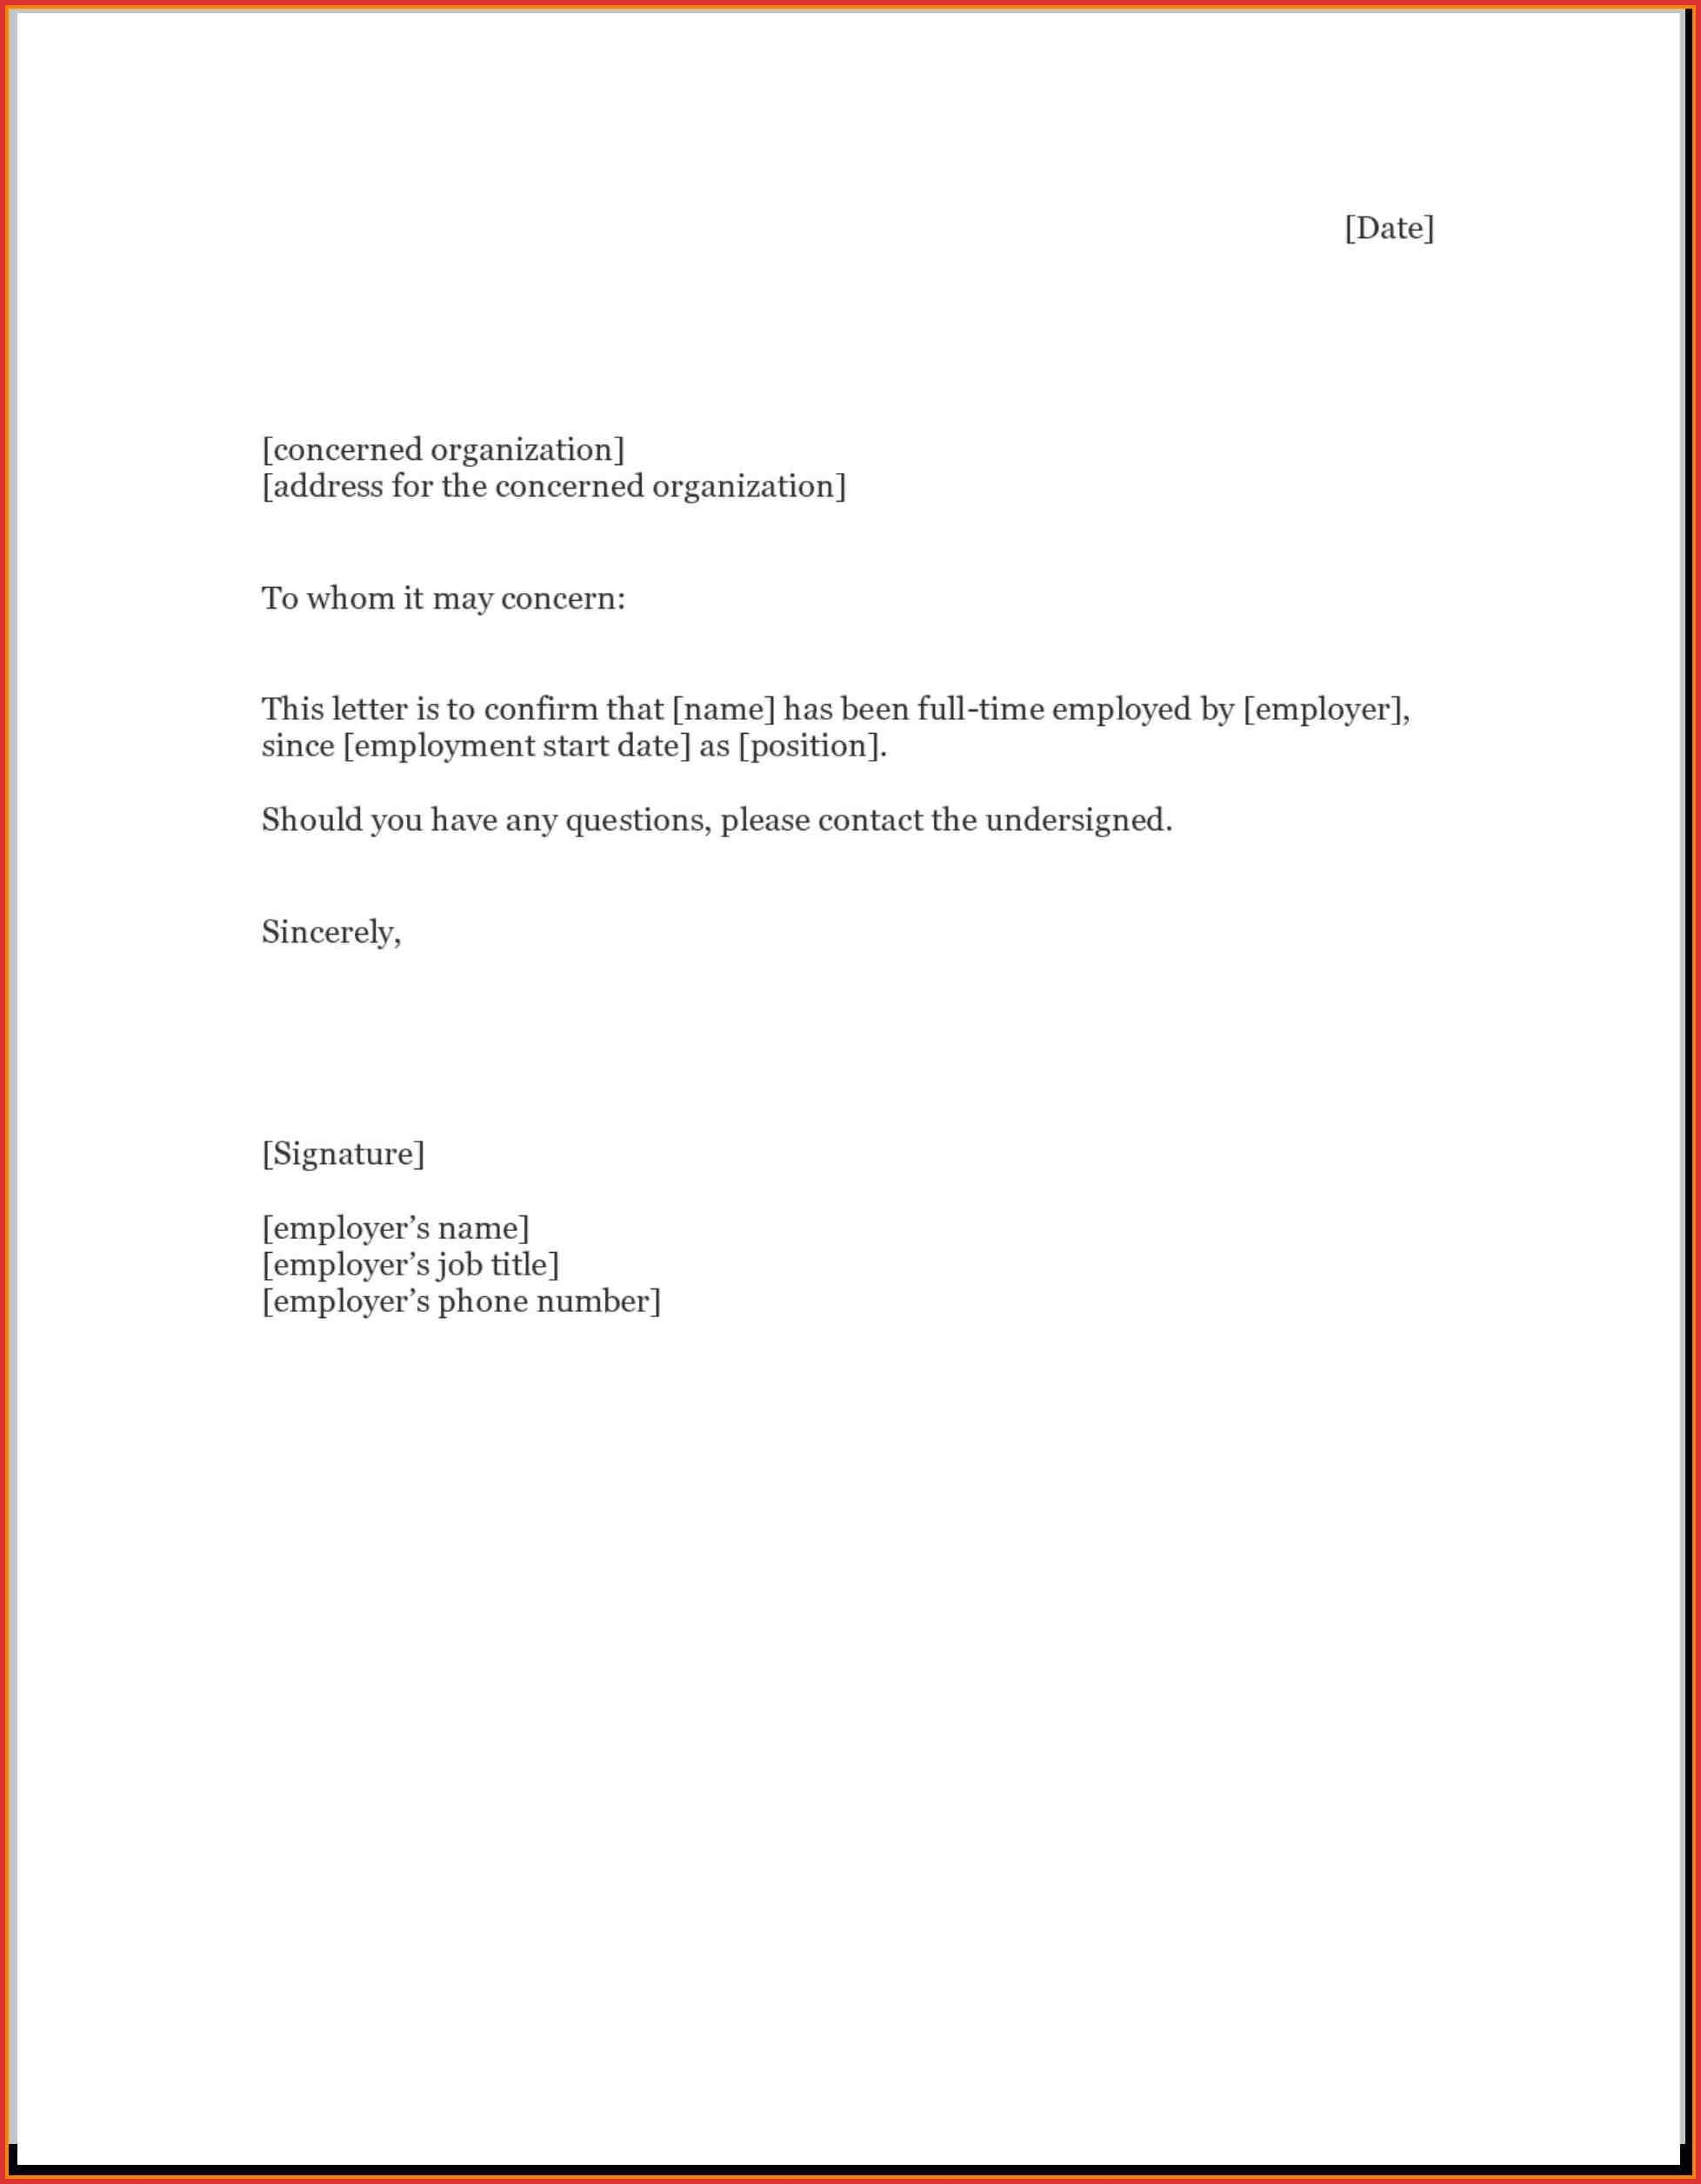 Employment Verification Letter Template | Employment Verification Letter To Whom It May Concern Template